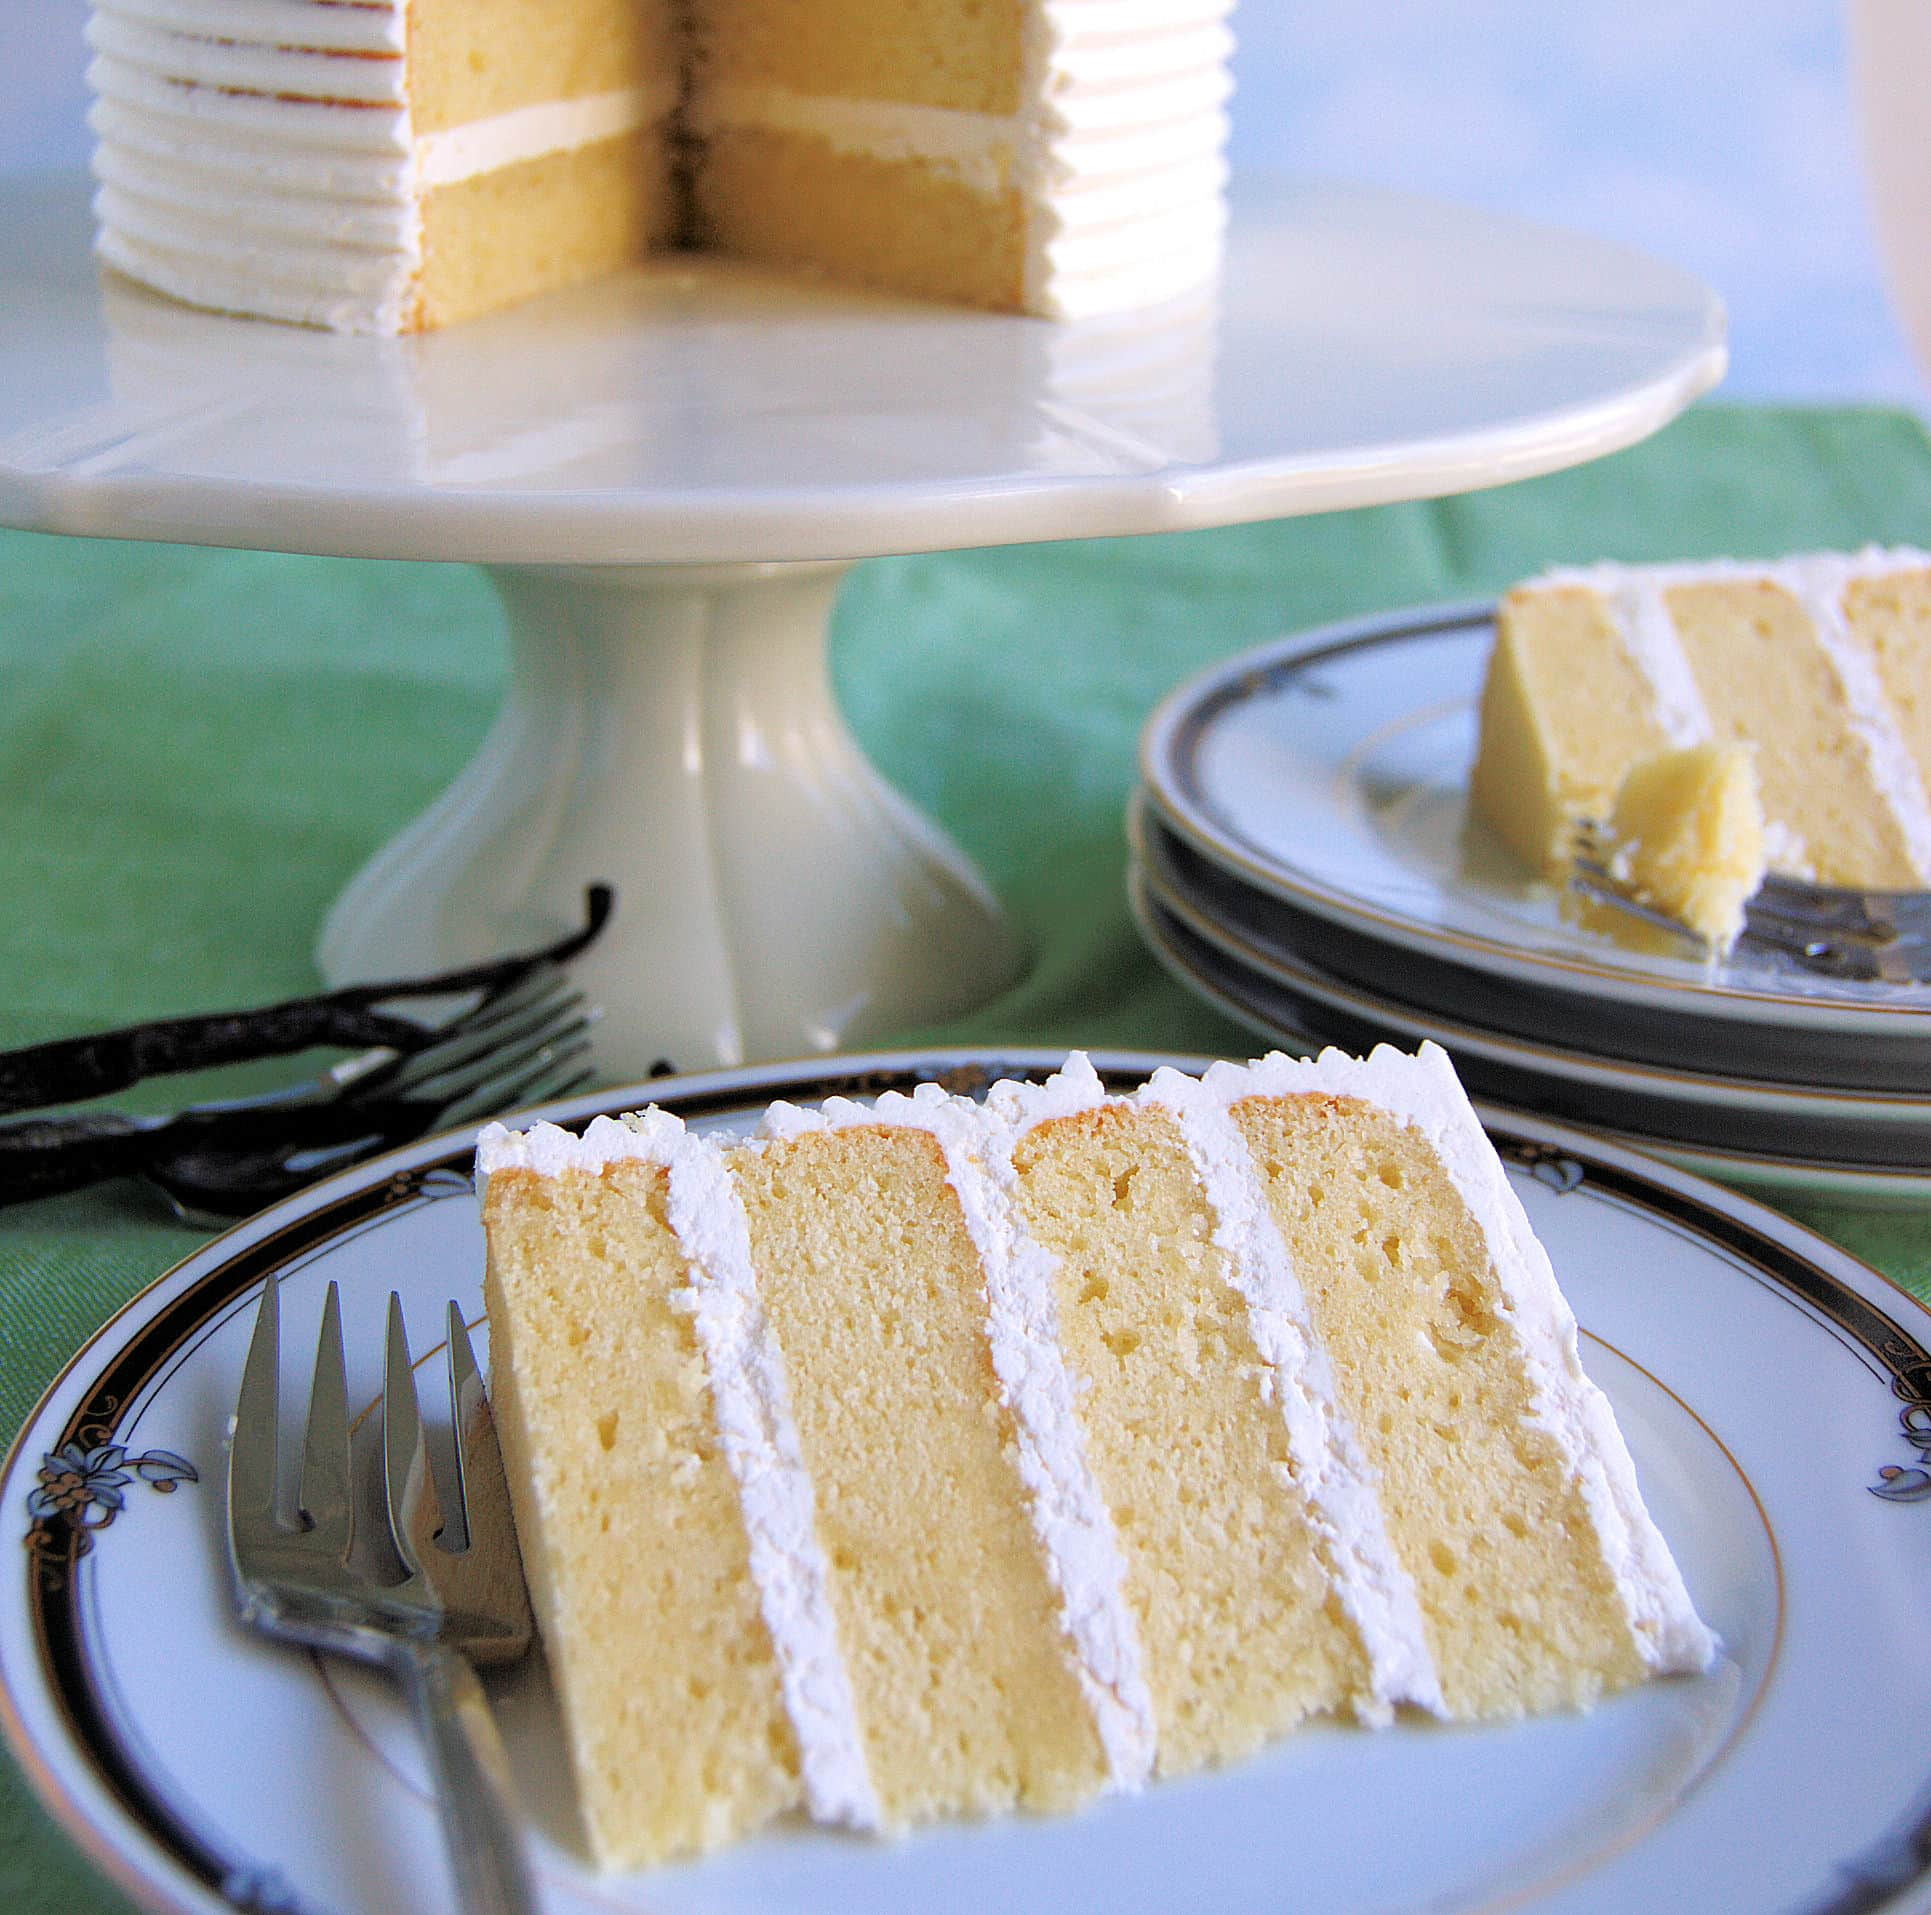 a 34 layer slice of vanilla cake with a fork on a white plate.